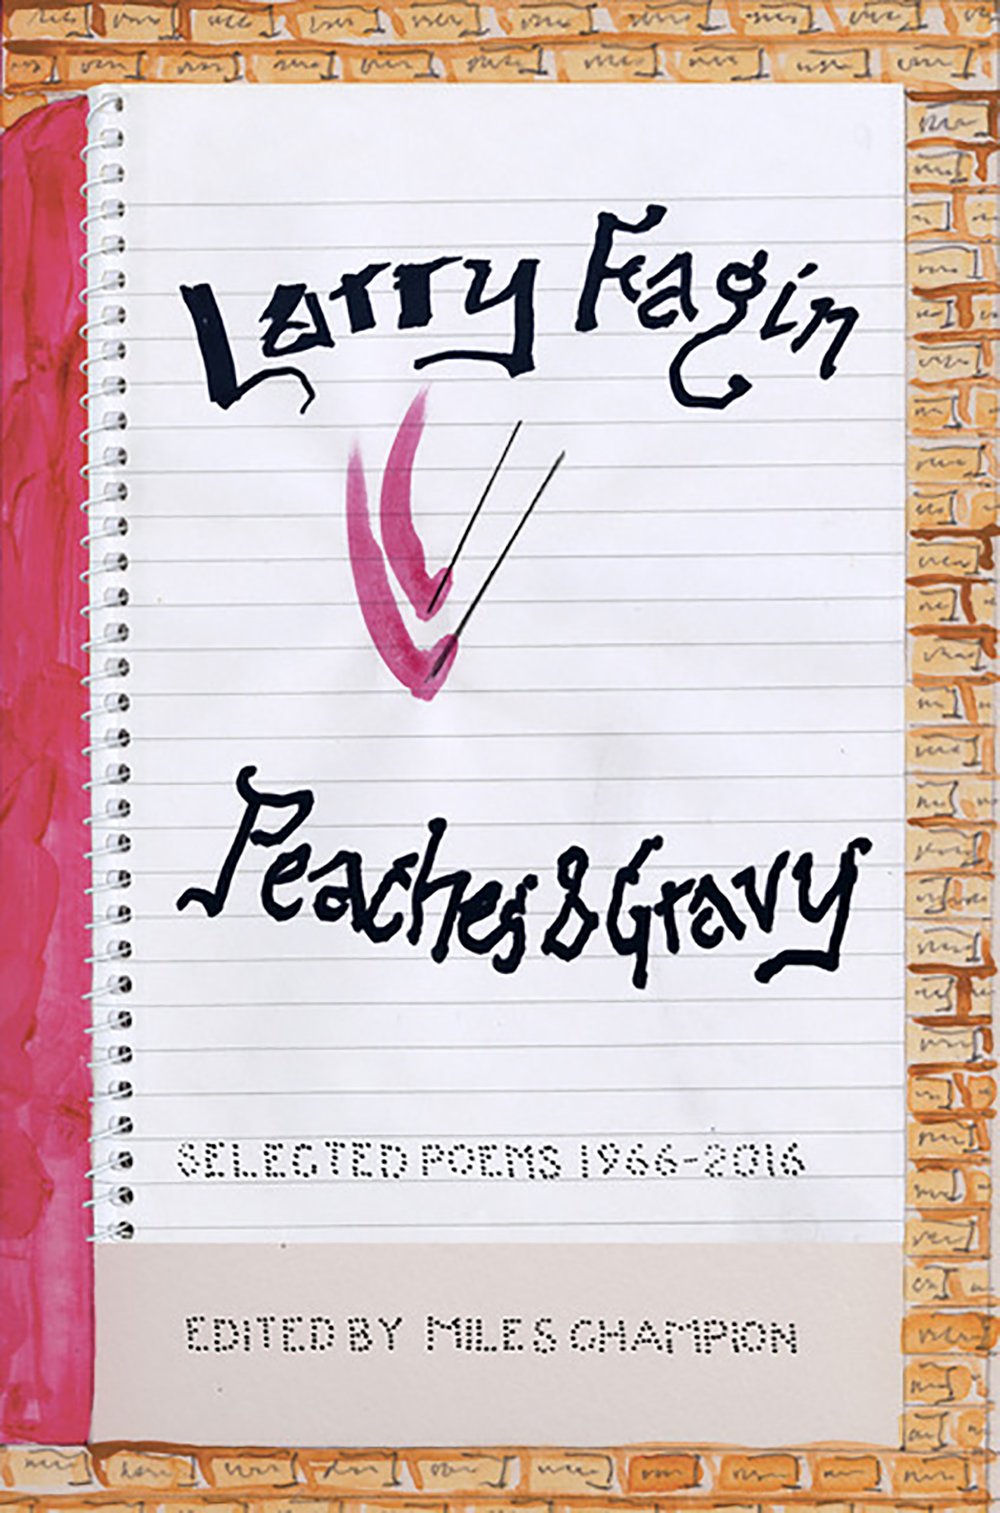 Peaches & Gravy: Selected Poems 1966-2016